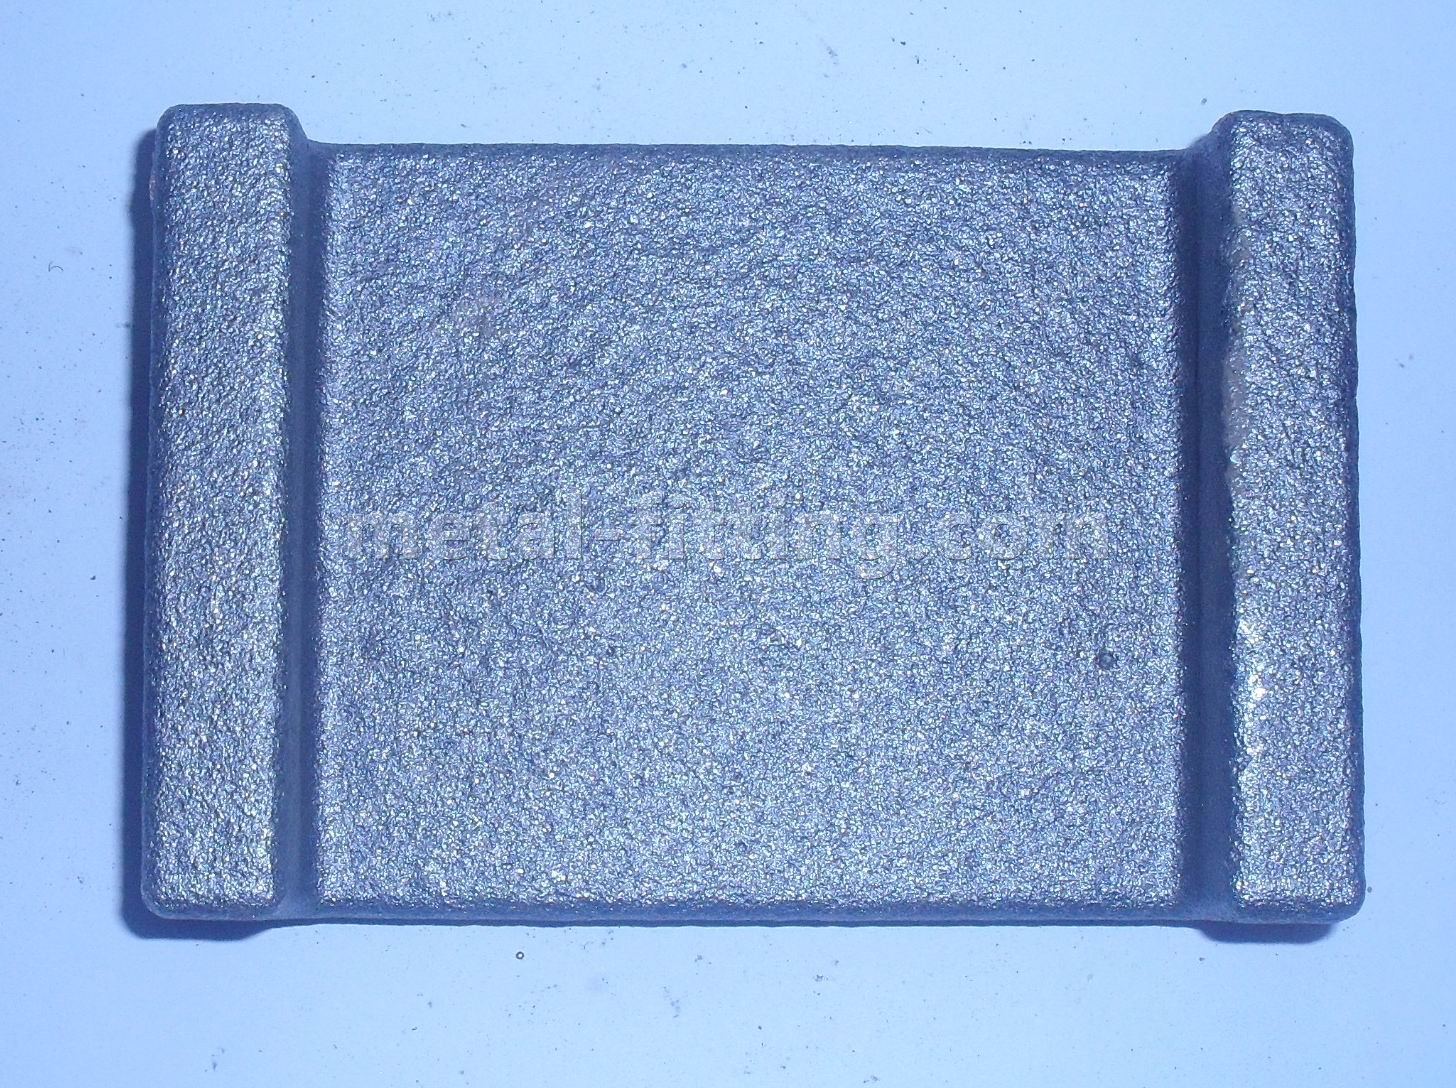 scaffolding base,building fitting,scaffolding accessories-SDC10758 (4)